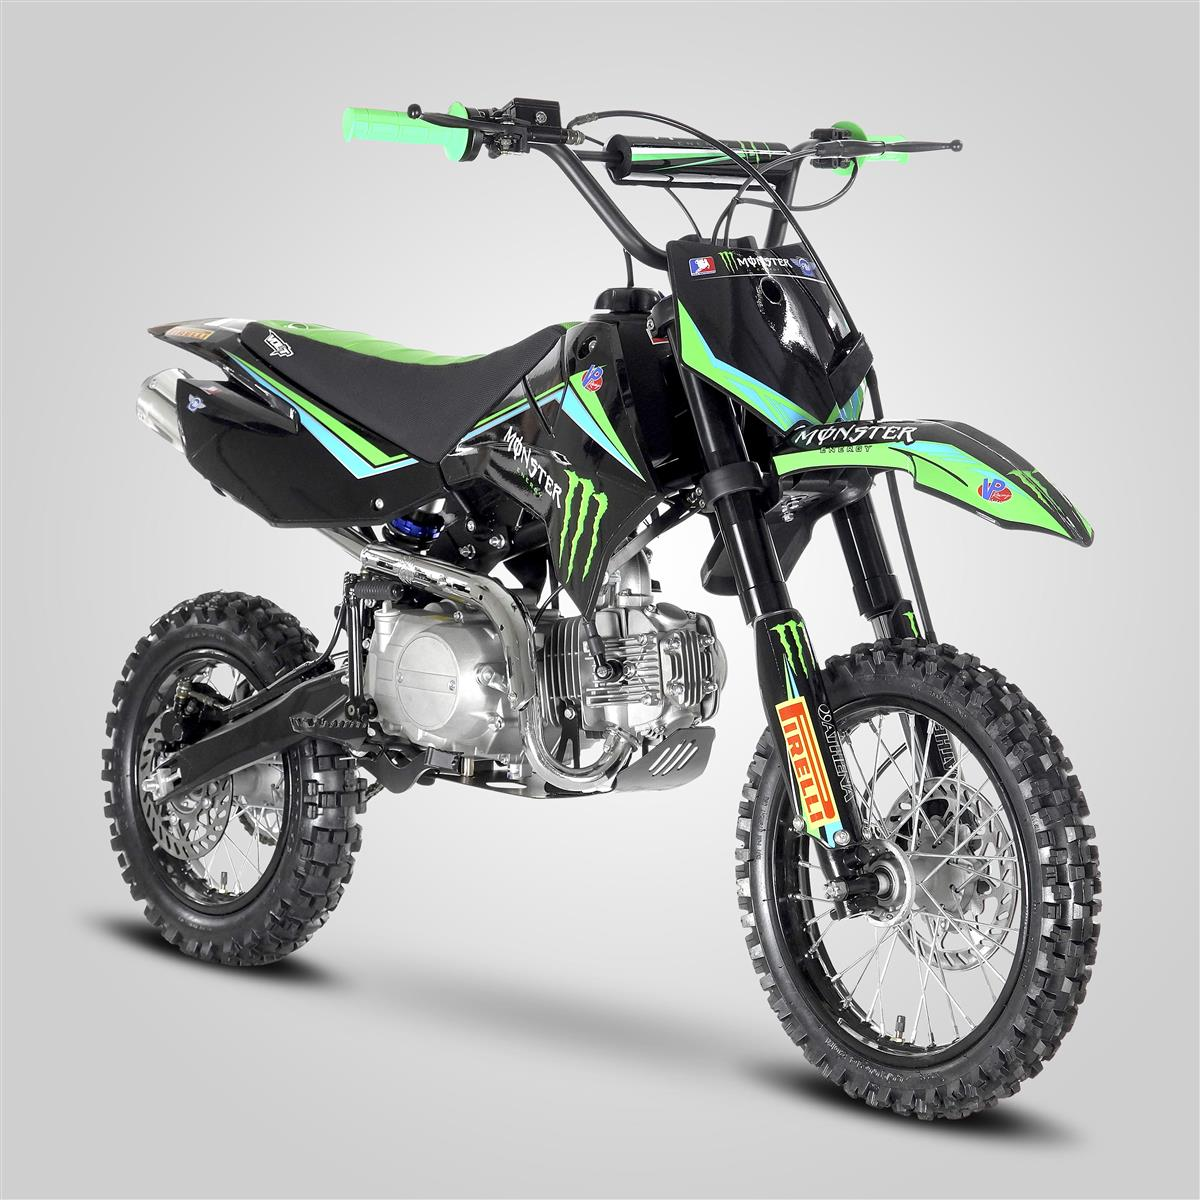 dirt bike pit bike mx 110cc semi auto 12 14 monster smallmx dirt bike pit bike quads. Black Bedroom Furniture Sets. Home Design Ideas